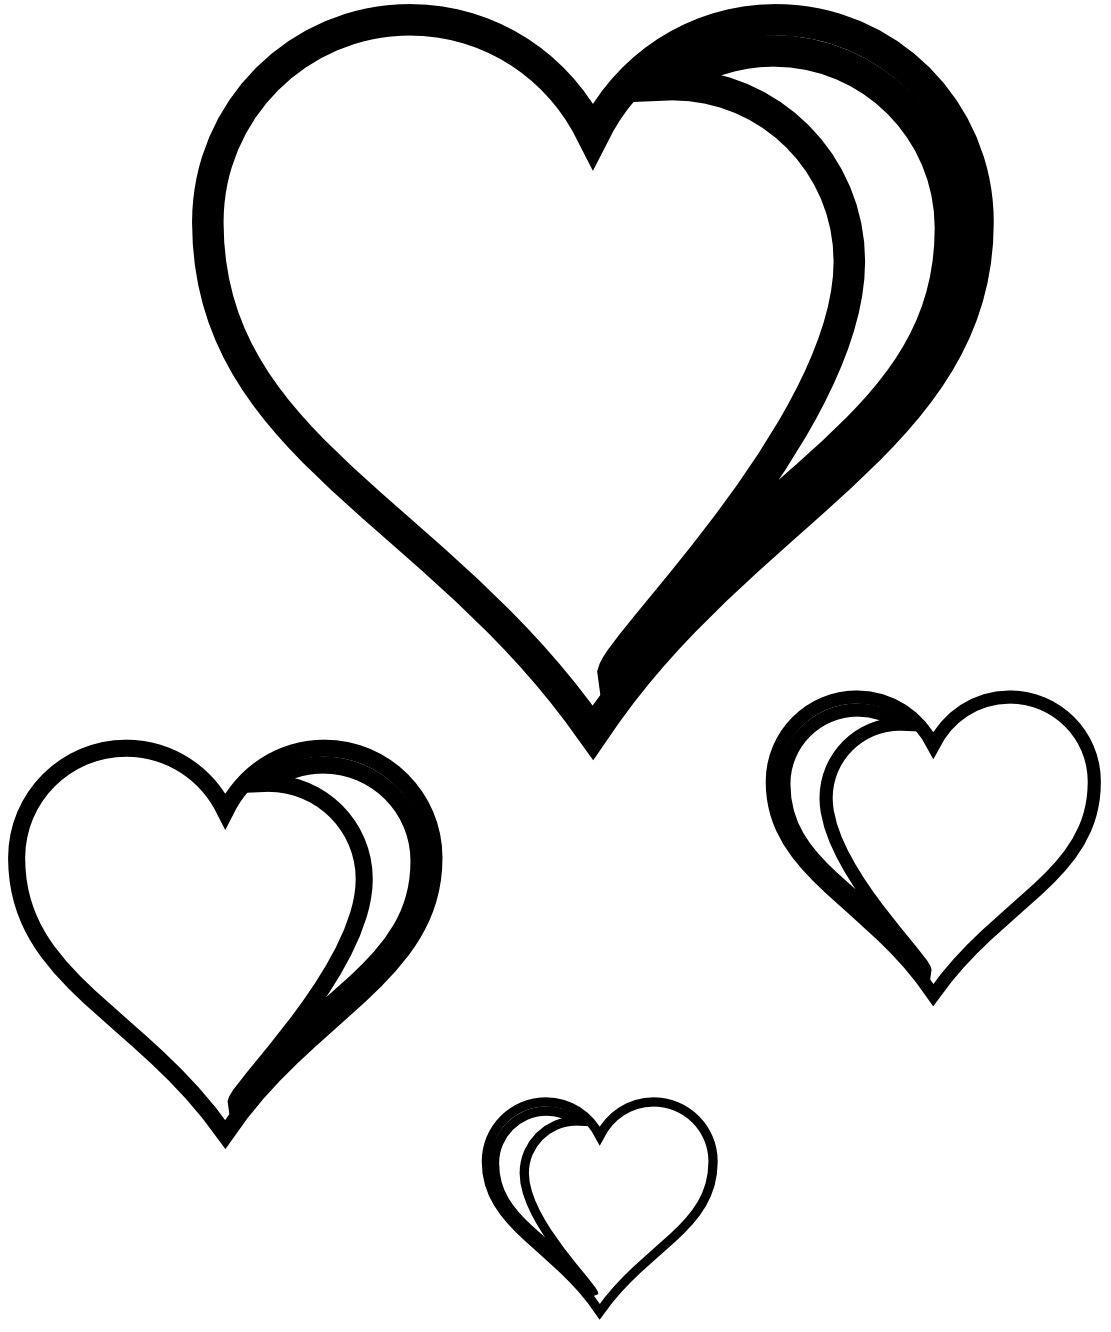 Heart  black and white clipart heart black and white free images 5